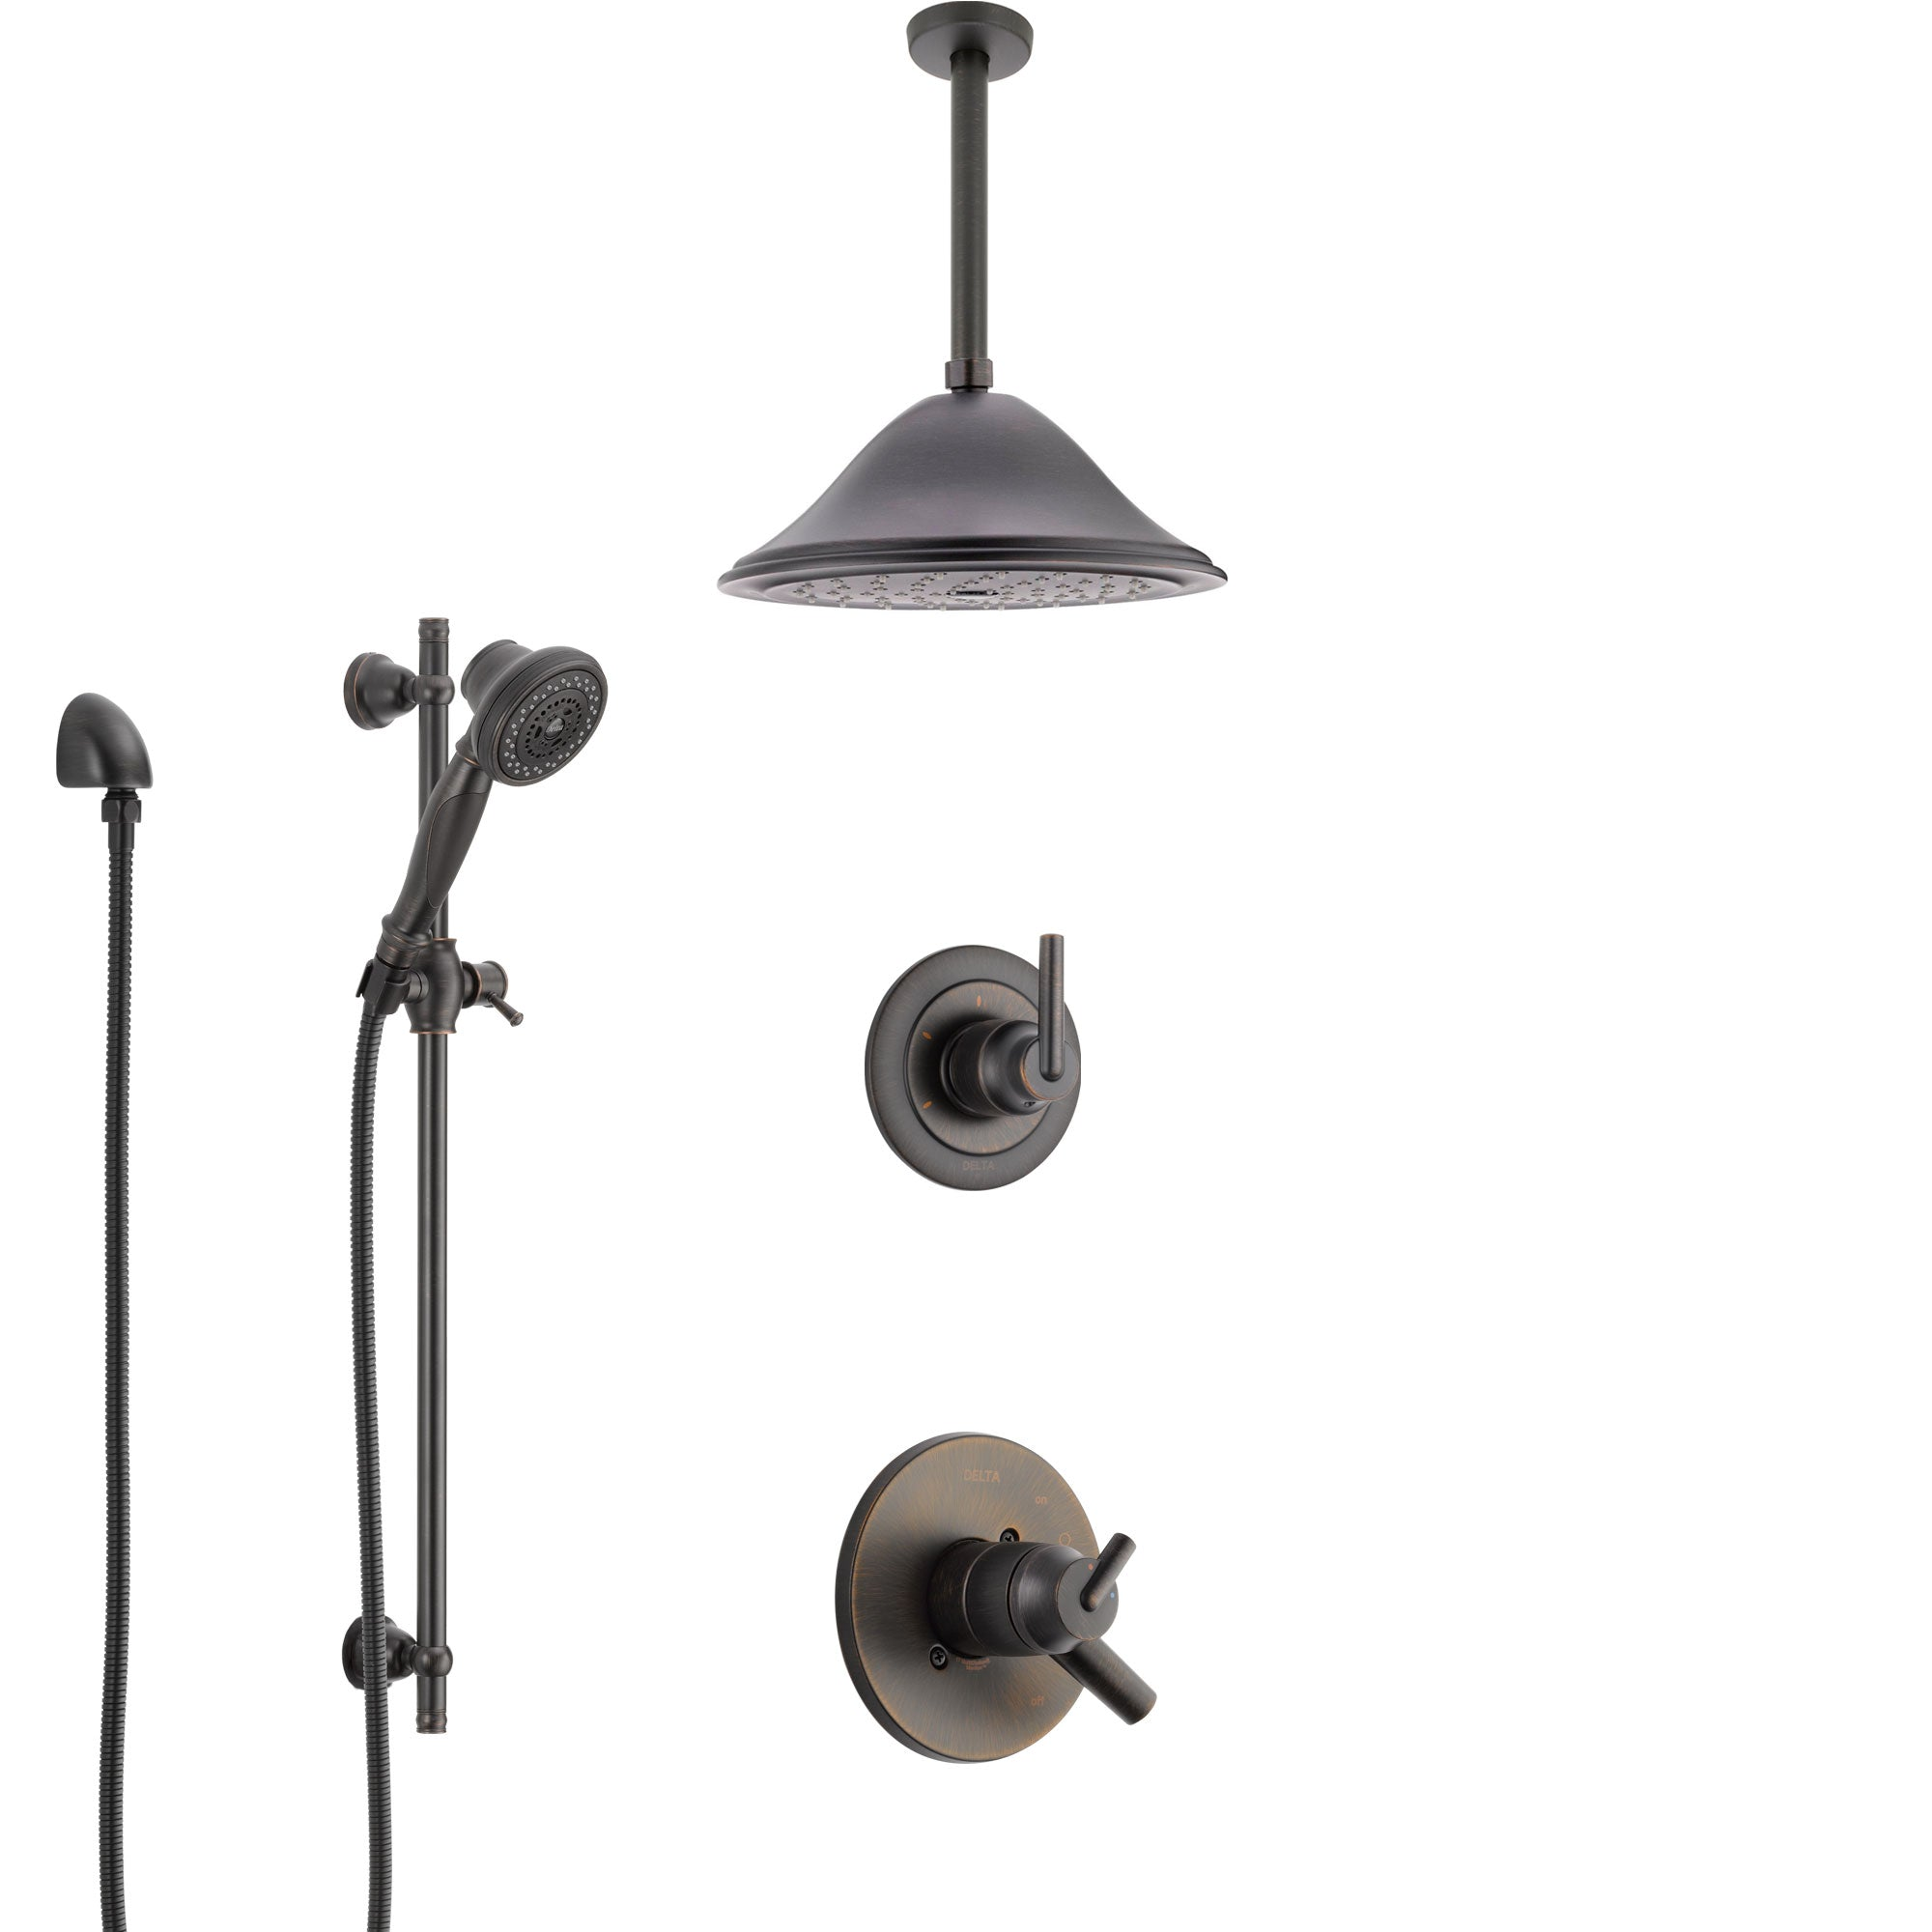 Delta Trinsic Venetian Bronze Shower System with Dual Control Handle, Diverter, Ceiling Mount Showerhead, and Hand Shower with Slidebar SS1759RB7